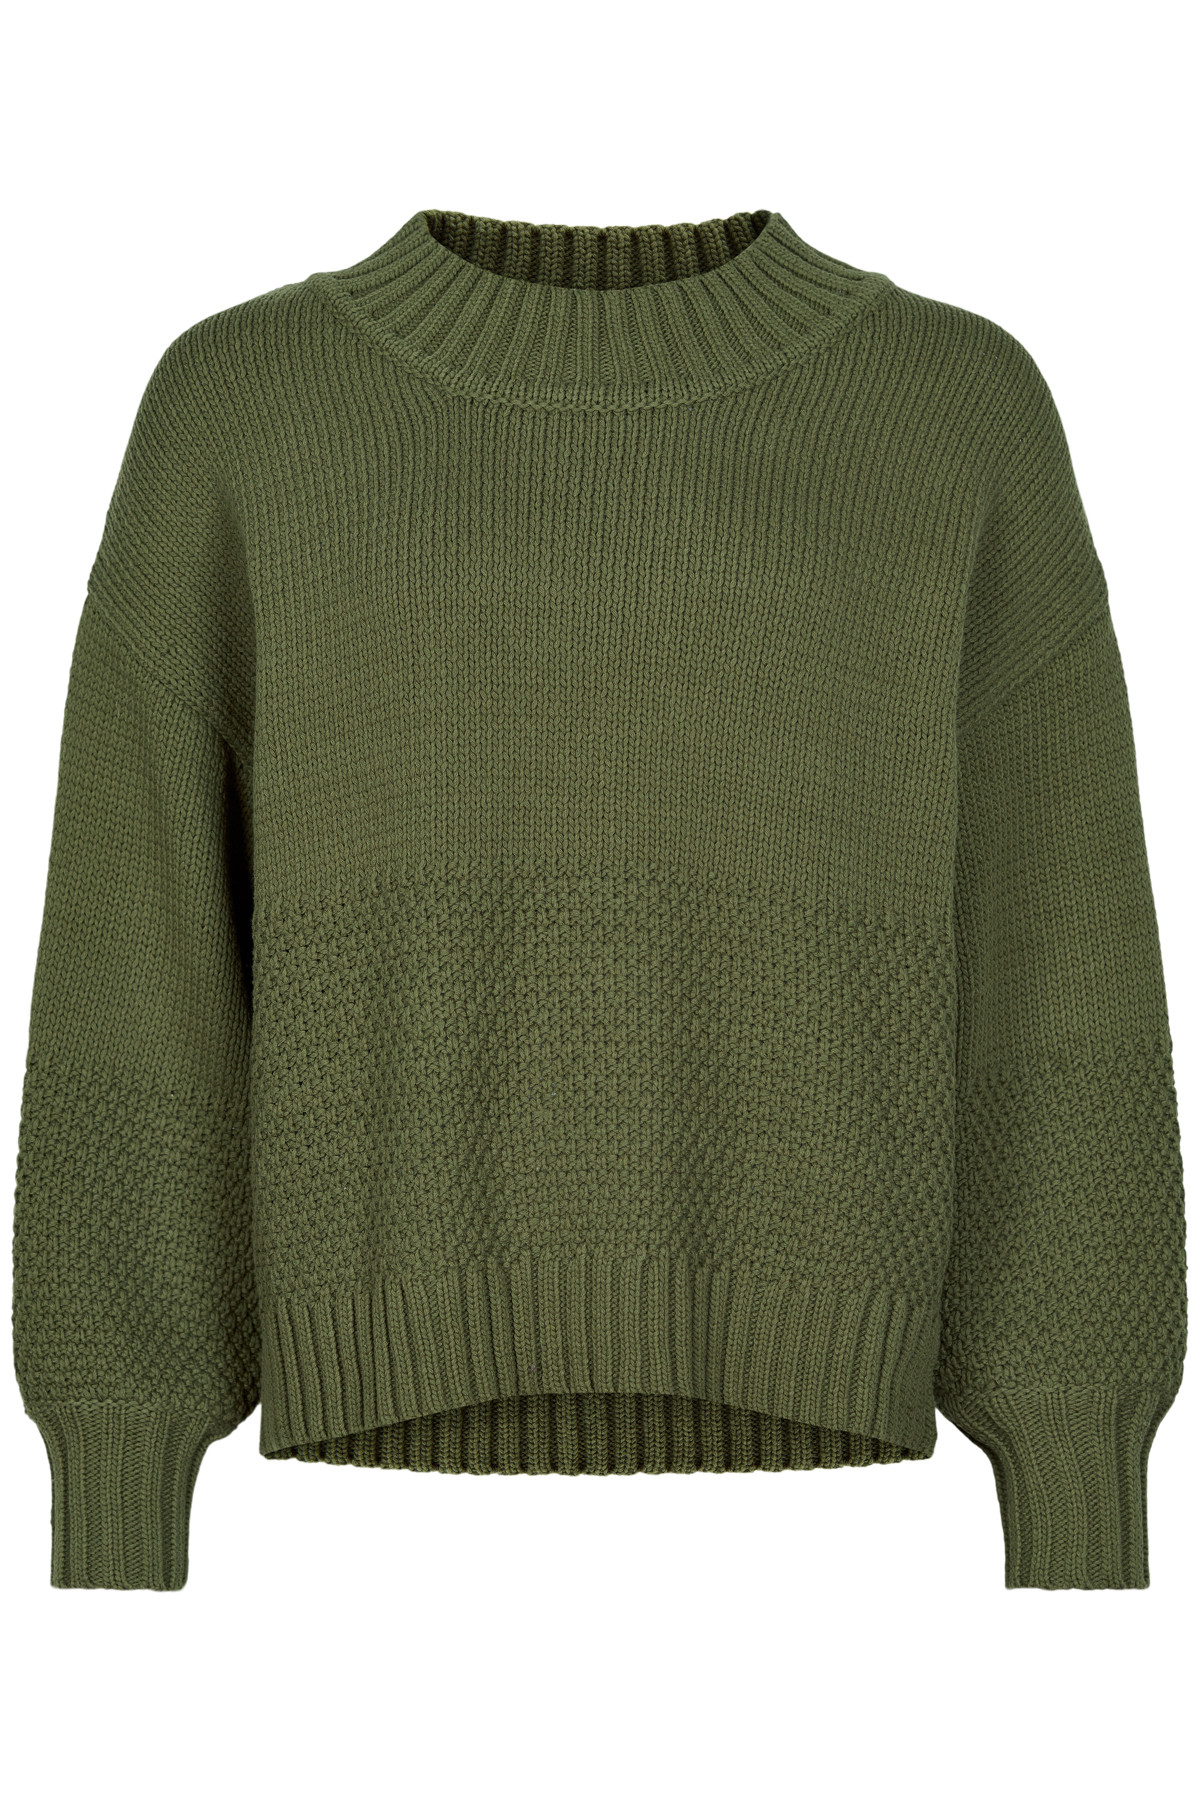 Image of   AND LESS ALANIESE PULLOVER 5120203 I (Ivy Green, M)